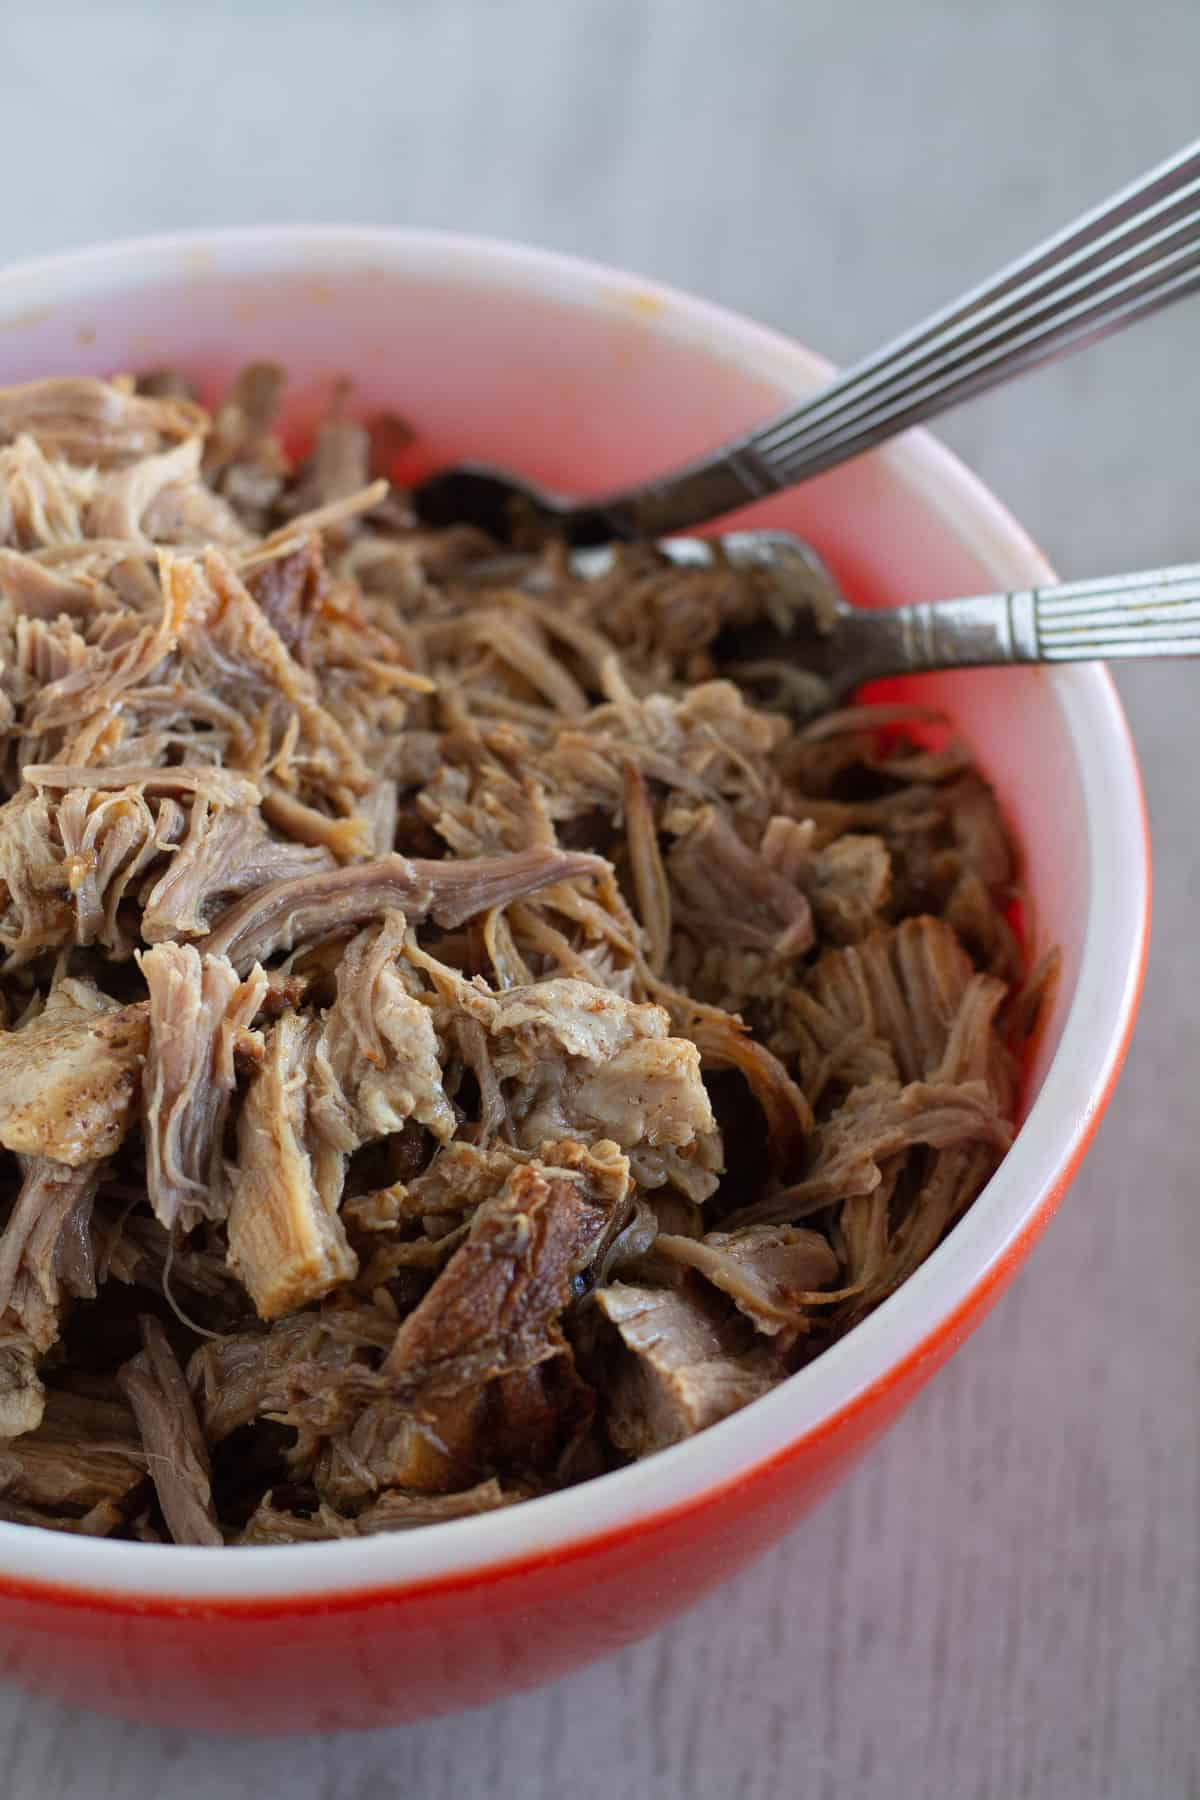 Cooked pulled pork in a bowl with 2 forks